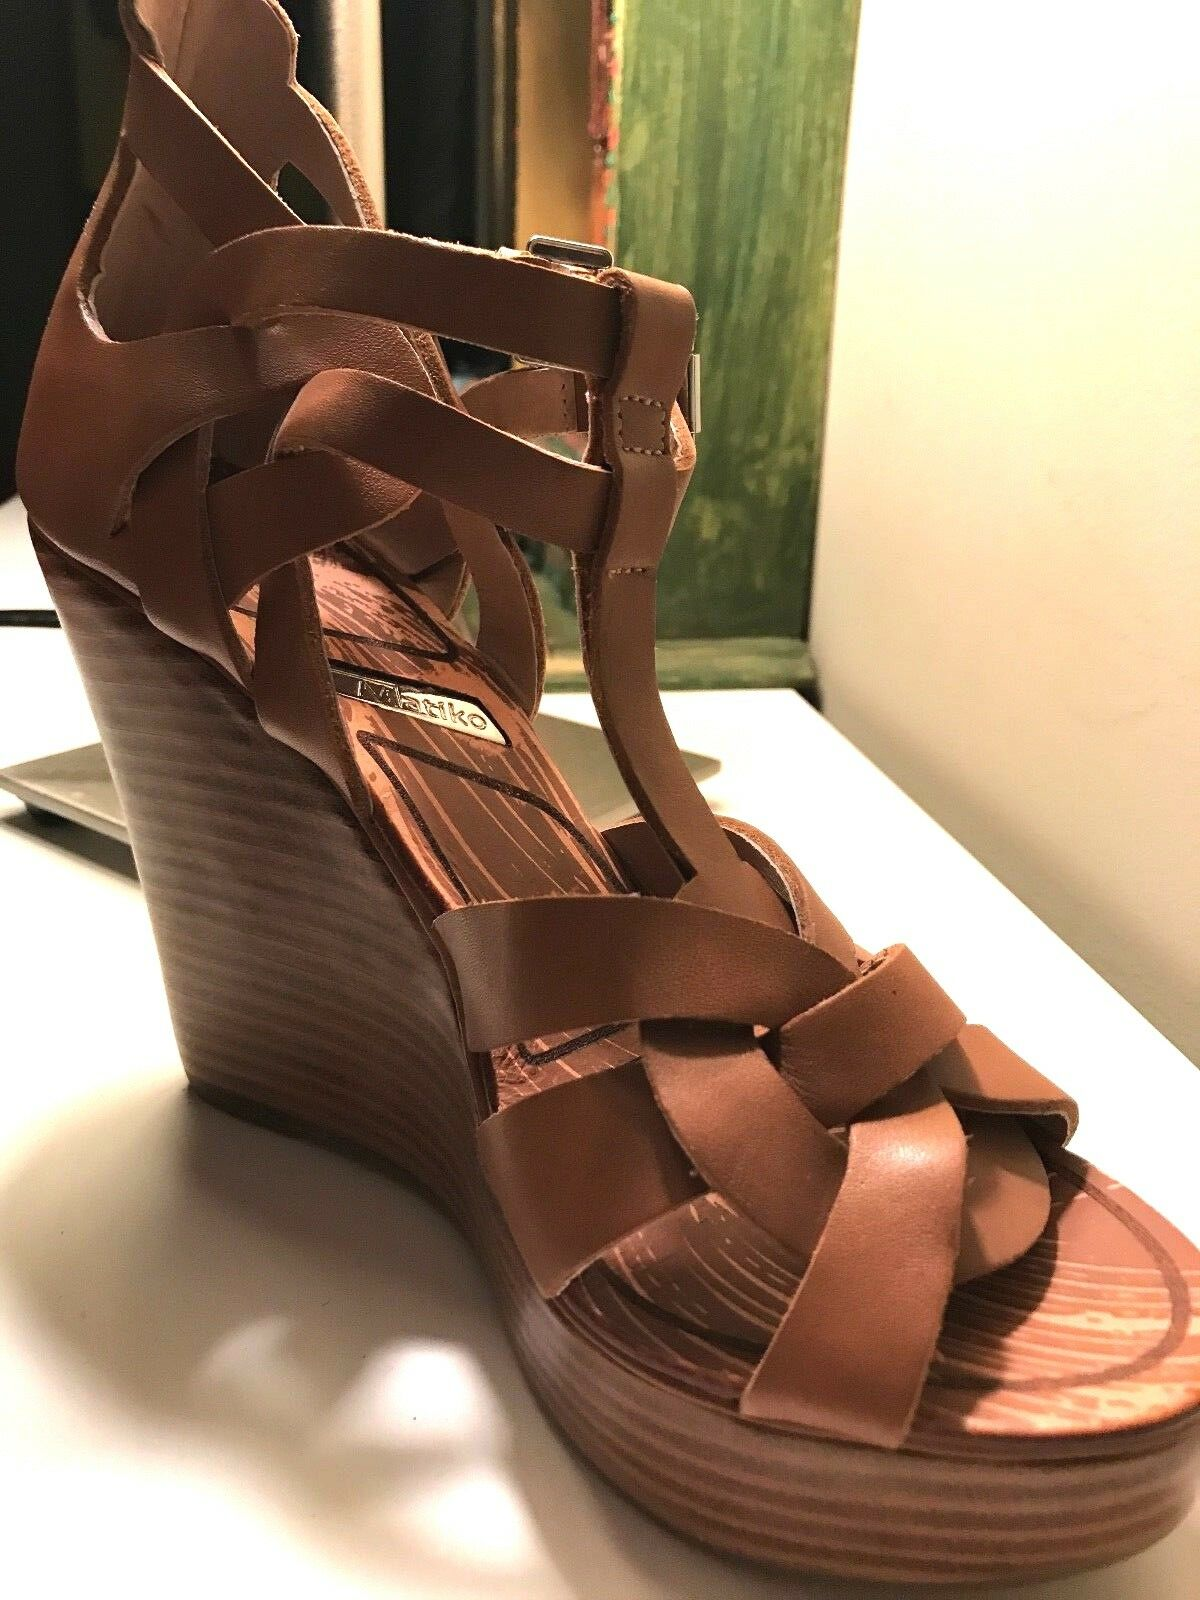 MATIKO Womens 7M Brown Leather Wedge Platform Zip Gladiator Sandals shoes 6 6.5